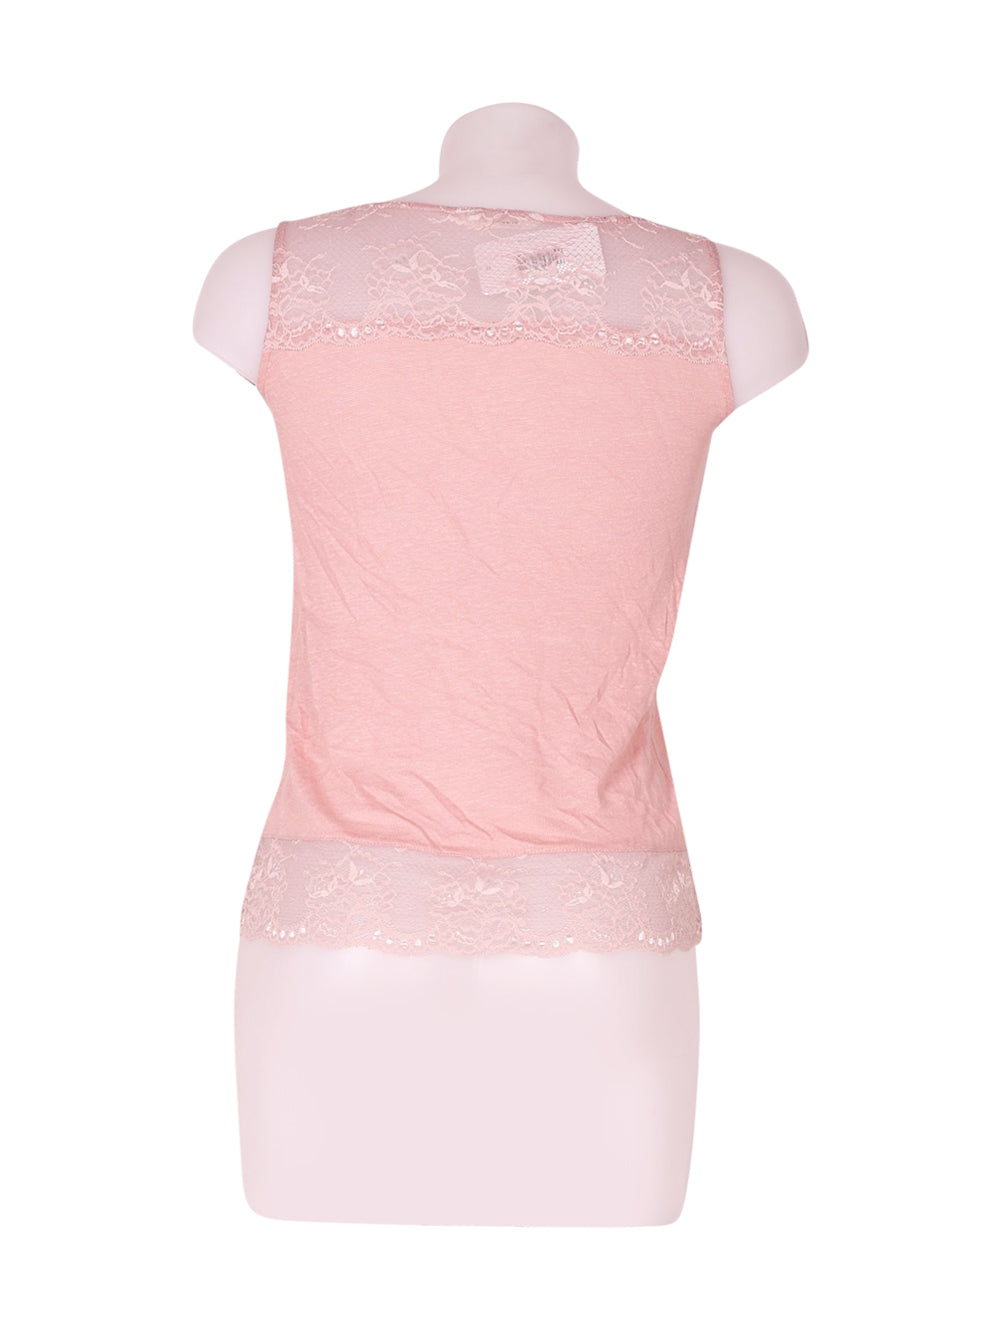 Back photo of Preloved Naf Naf Pink Woman's sleeveless top - size 6/XS